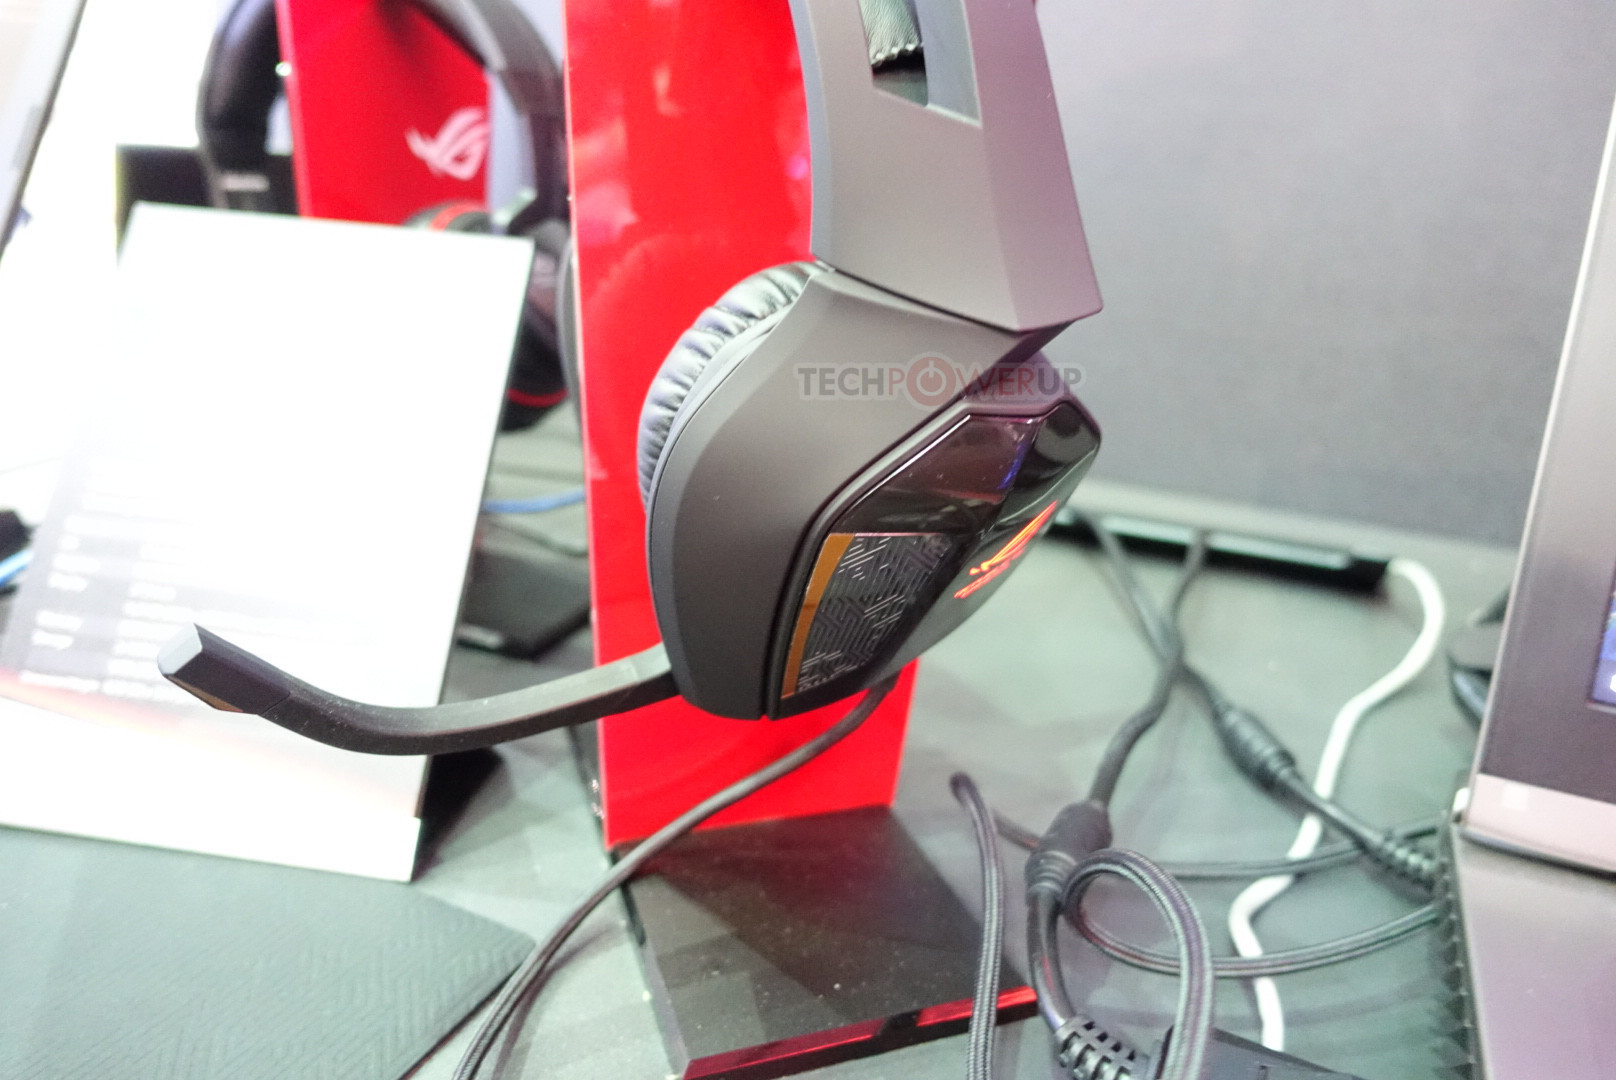 ASUS Unveils ROG Centurion 7 1 Headset with HDMI Input